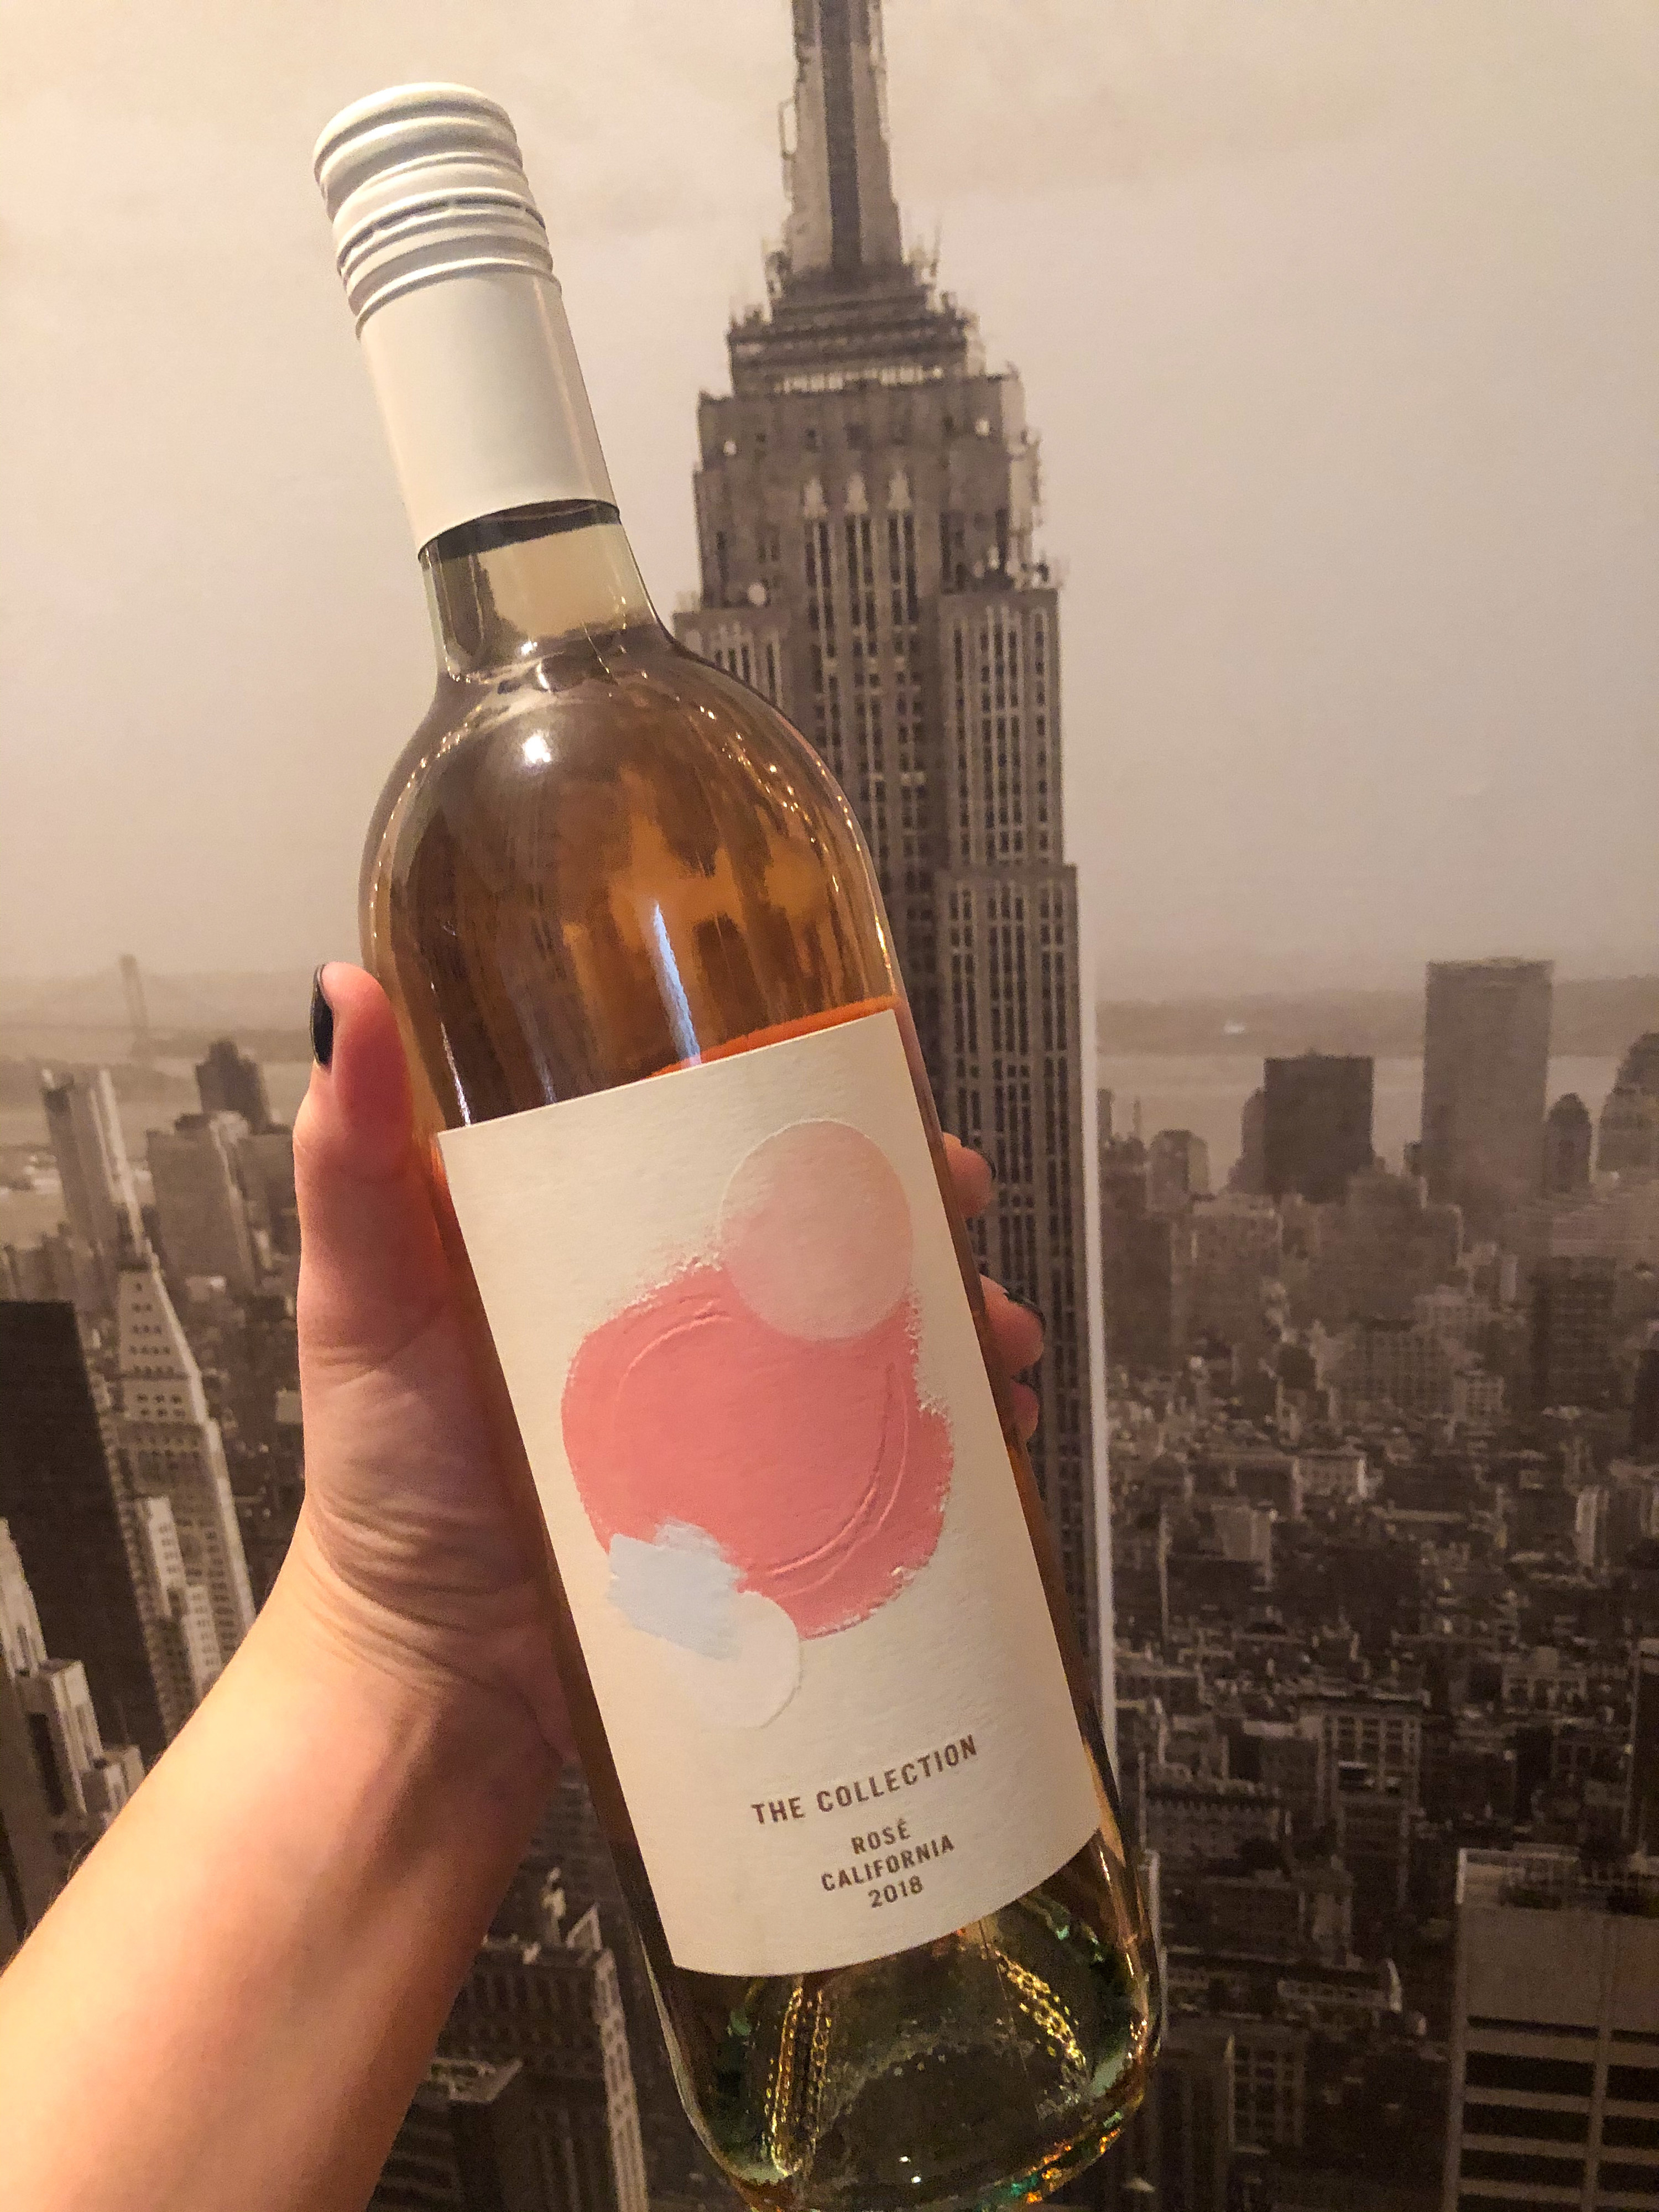 A hand holding a bottle of The Collection rosé in front of a portrait of NYC